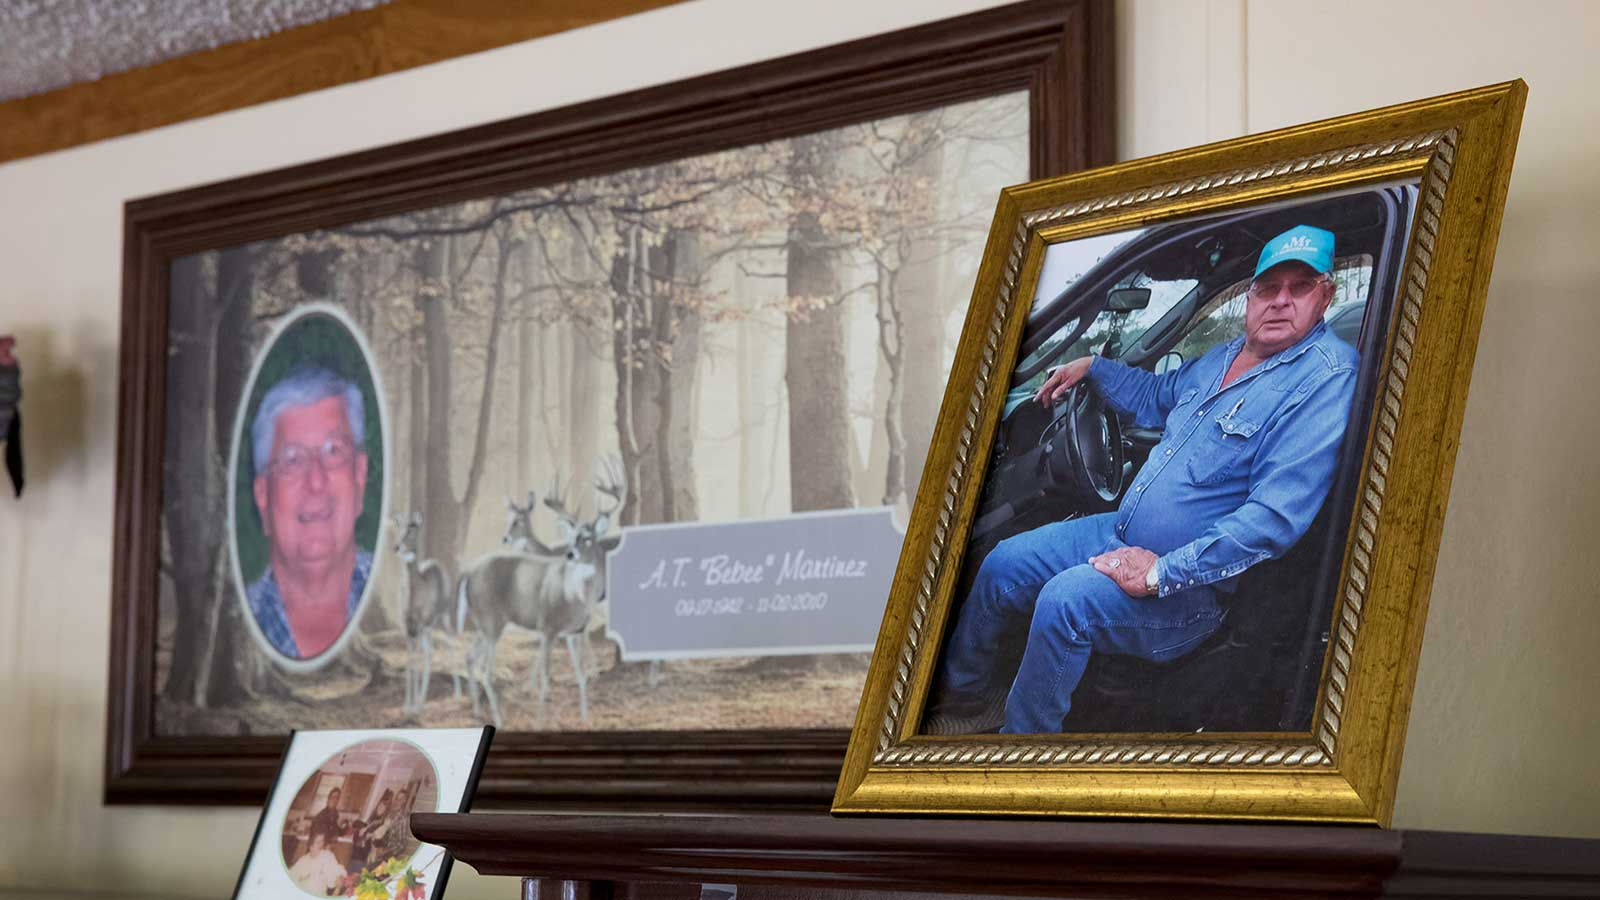 Framed photos of A.T. Martinez in the family home